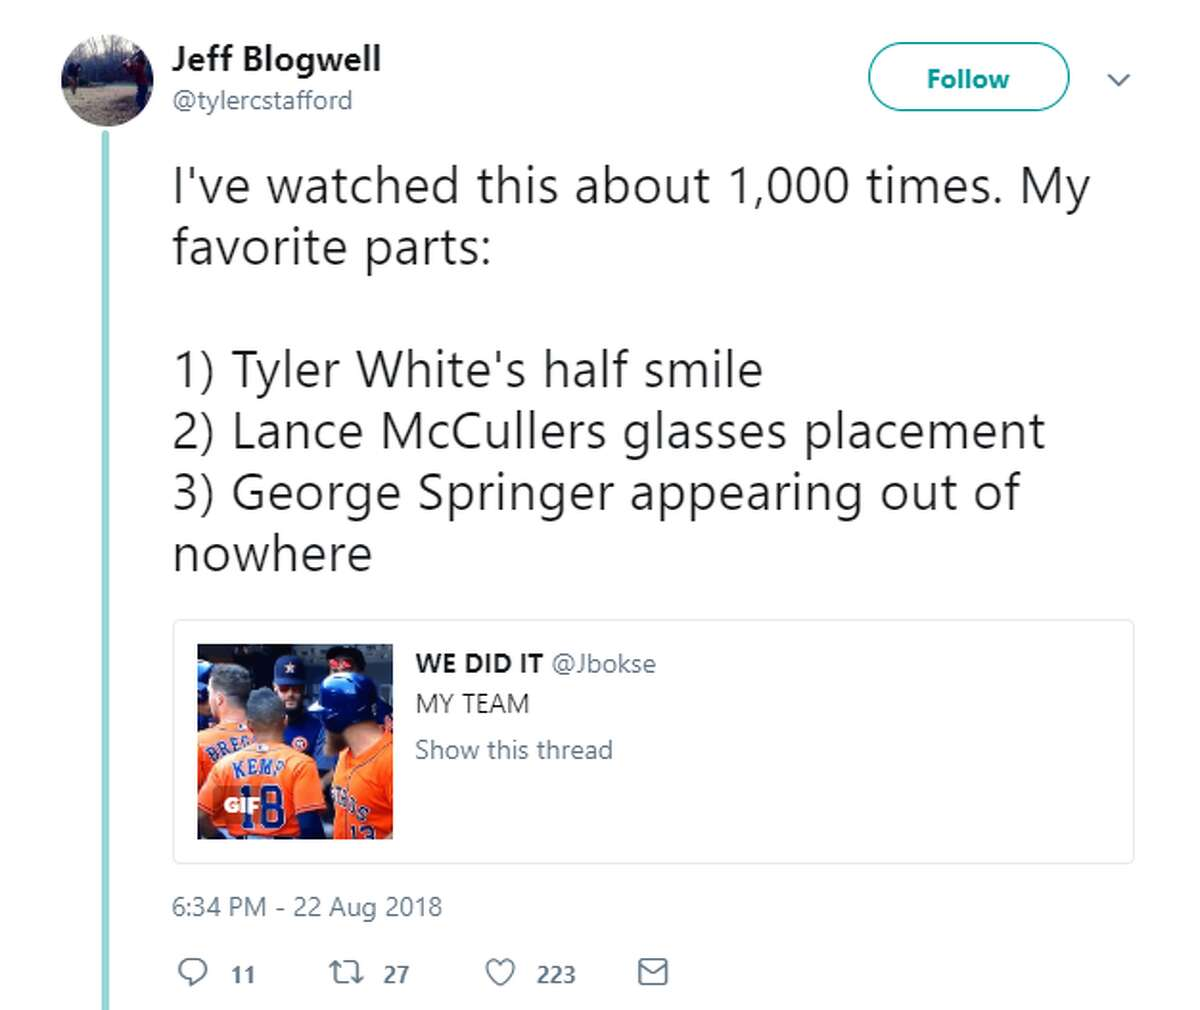 After a solo homerun from the Astros' Tyler White on Wednesday in Seattle, the team did a collective stare at a broadcast camera to the delight of the team's fans on Twitter.